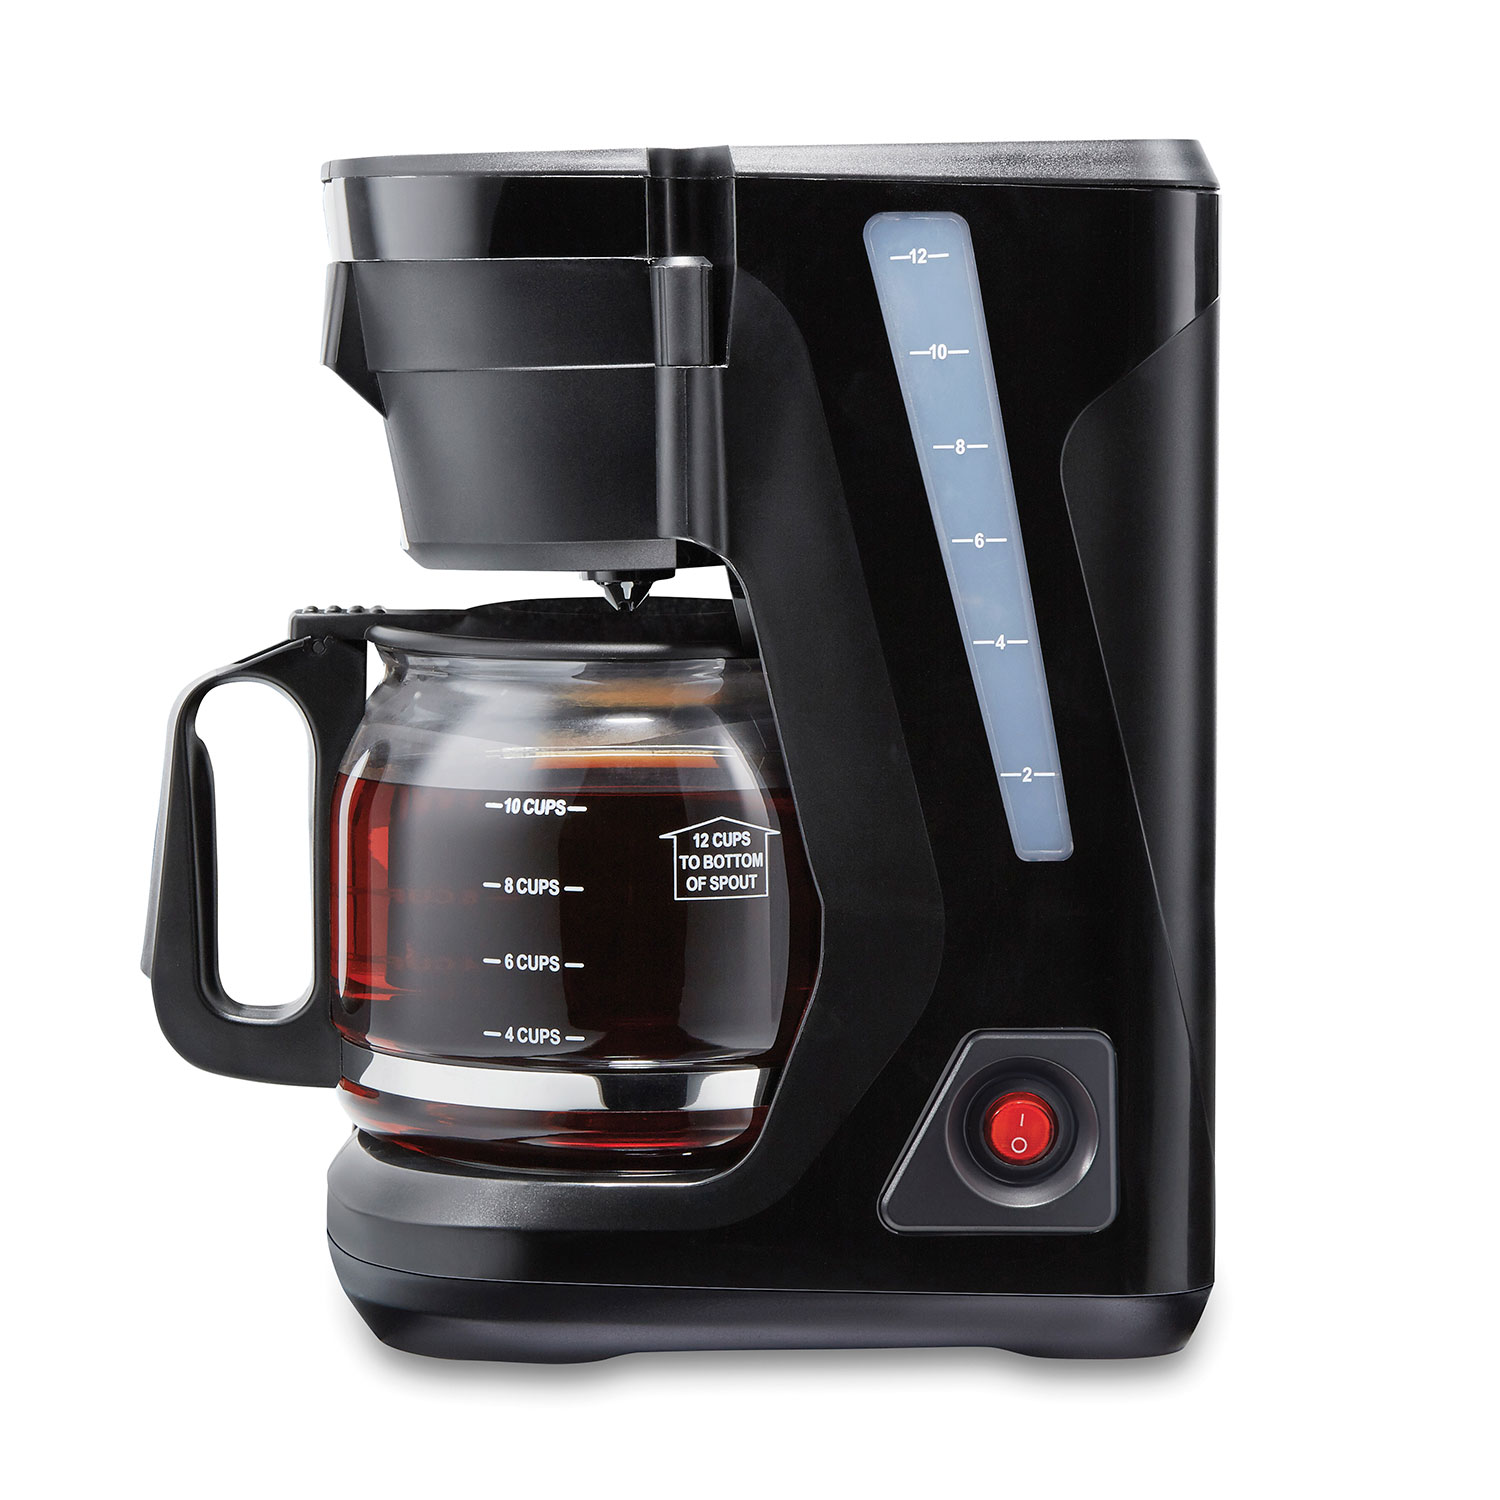 FrontFill™ Compact 12 Cup Coffee Maker (43680PS) Small Size